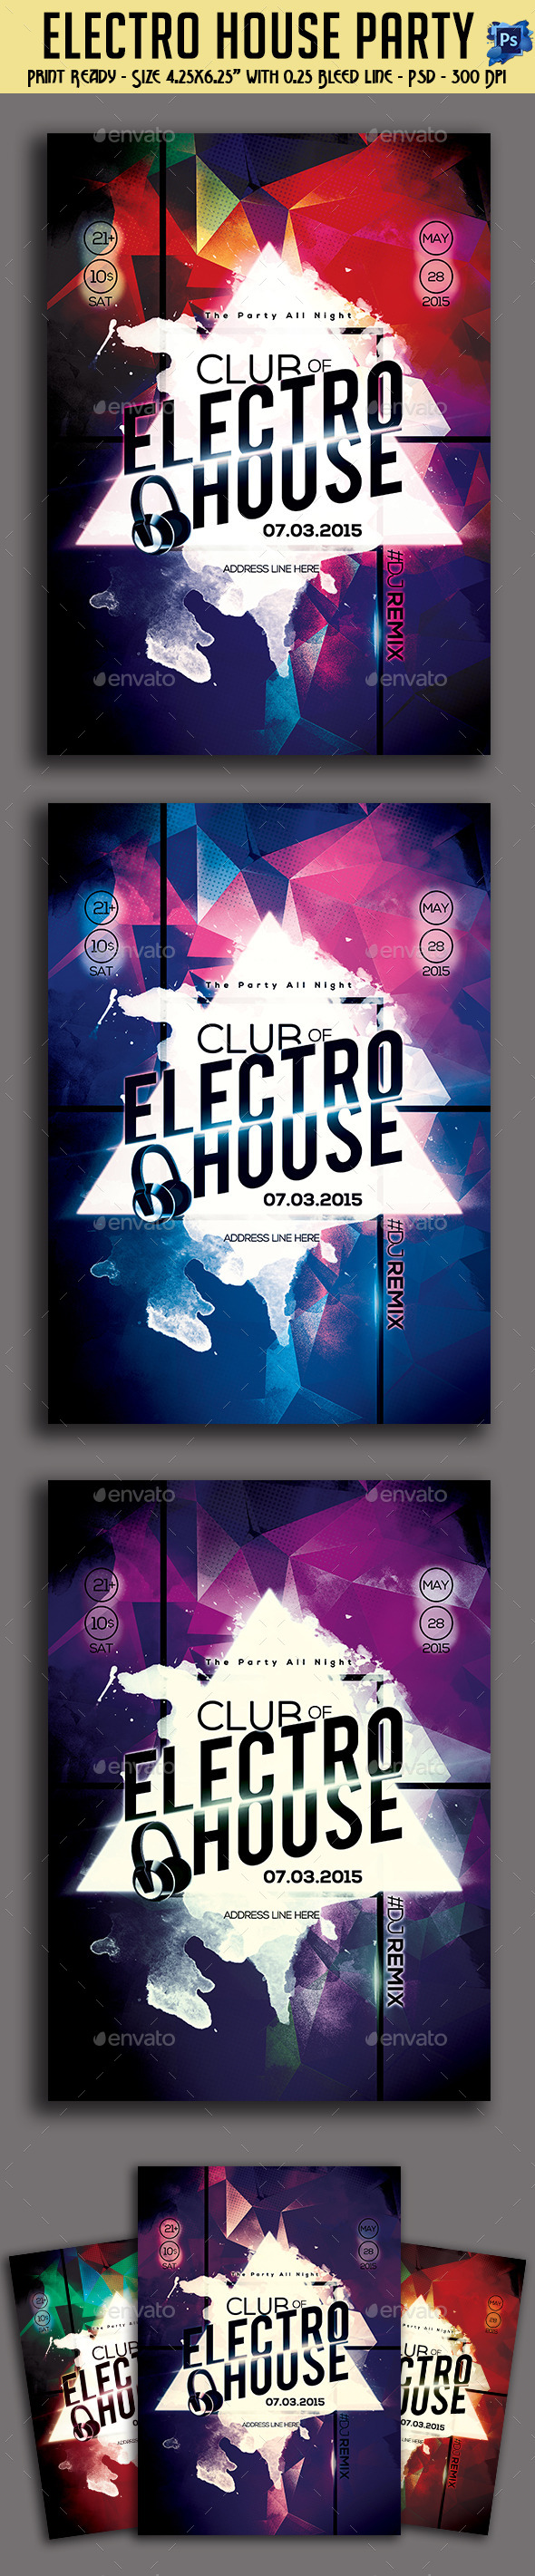 GraphicRiver Electro House Party Flyer 11157844